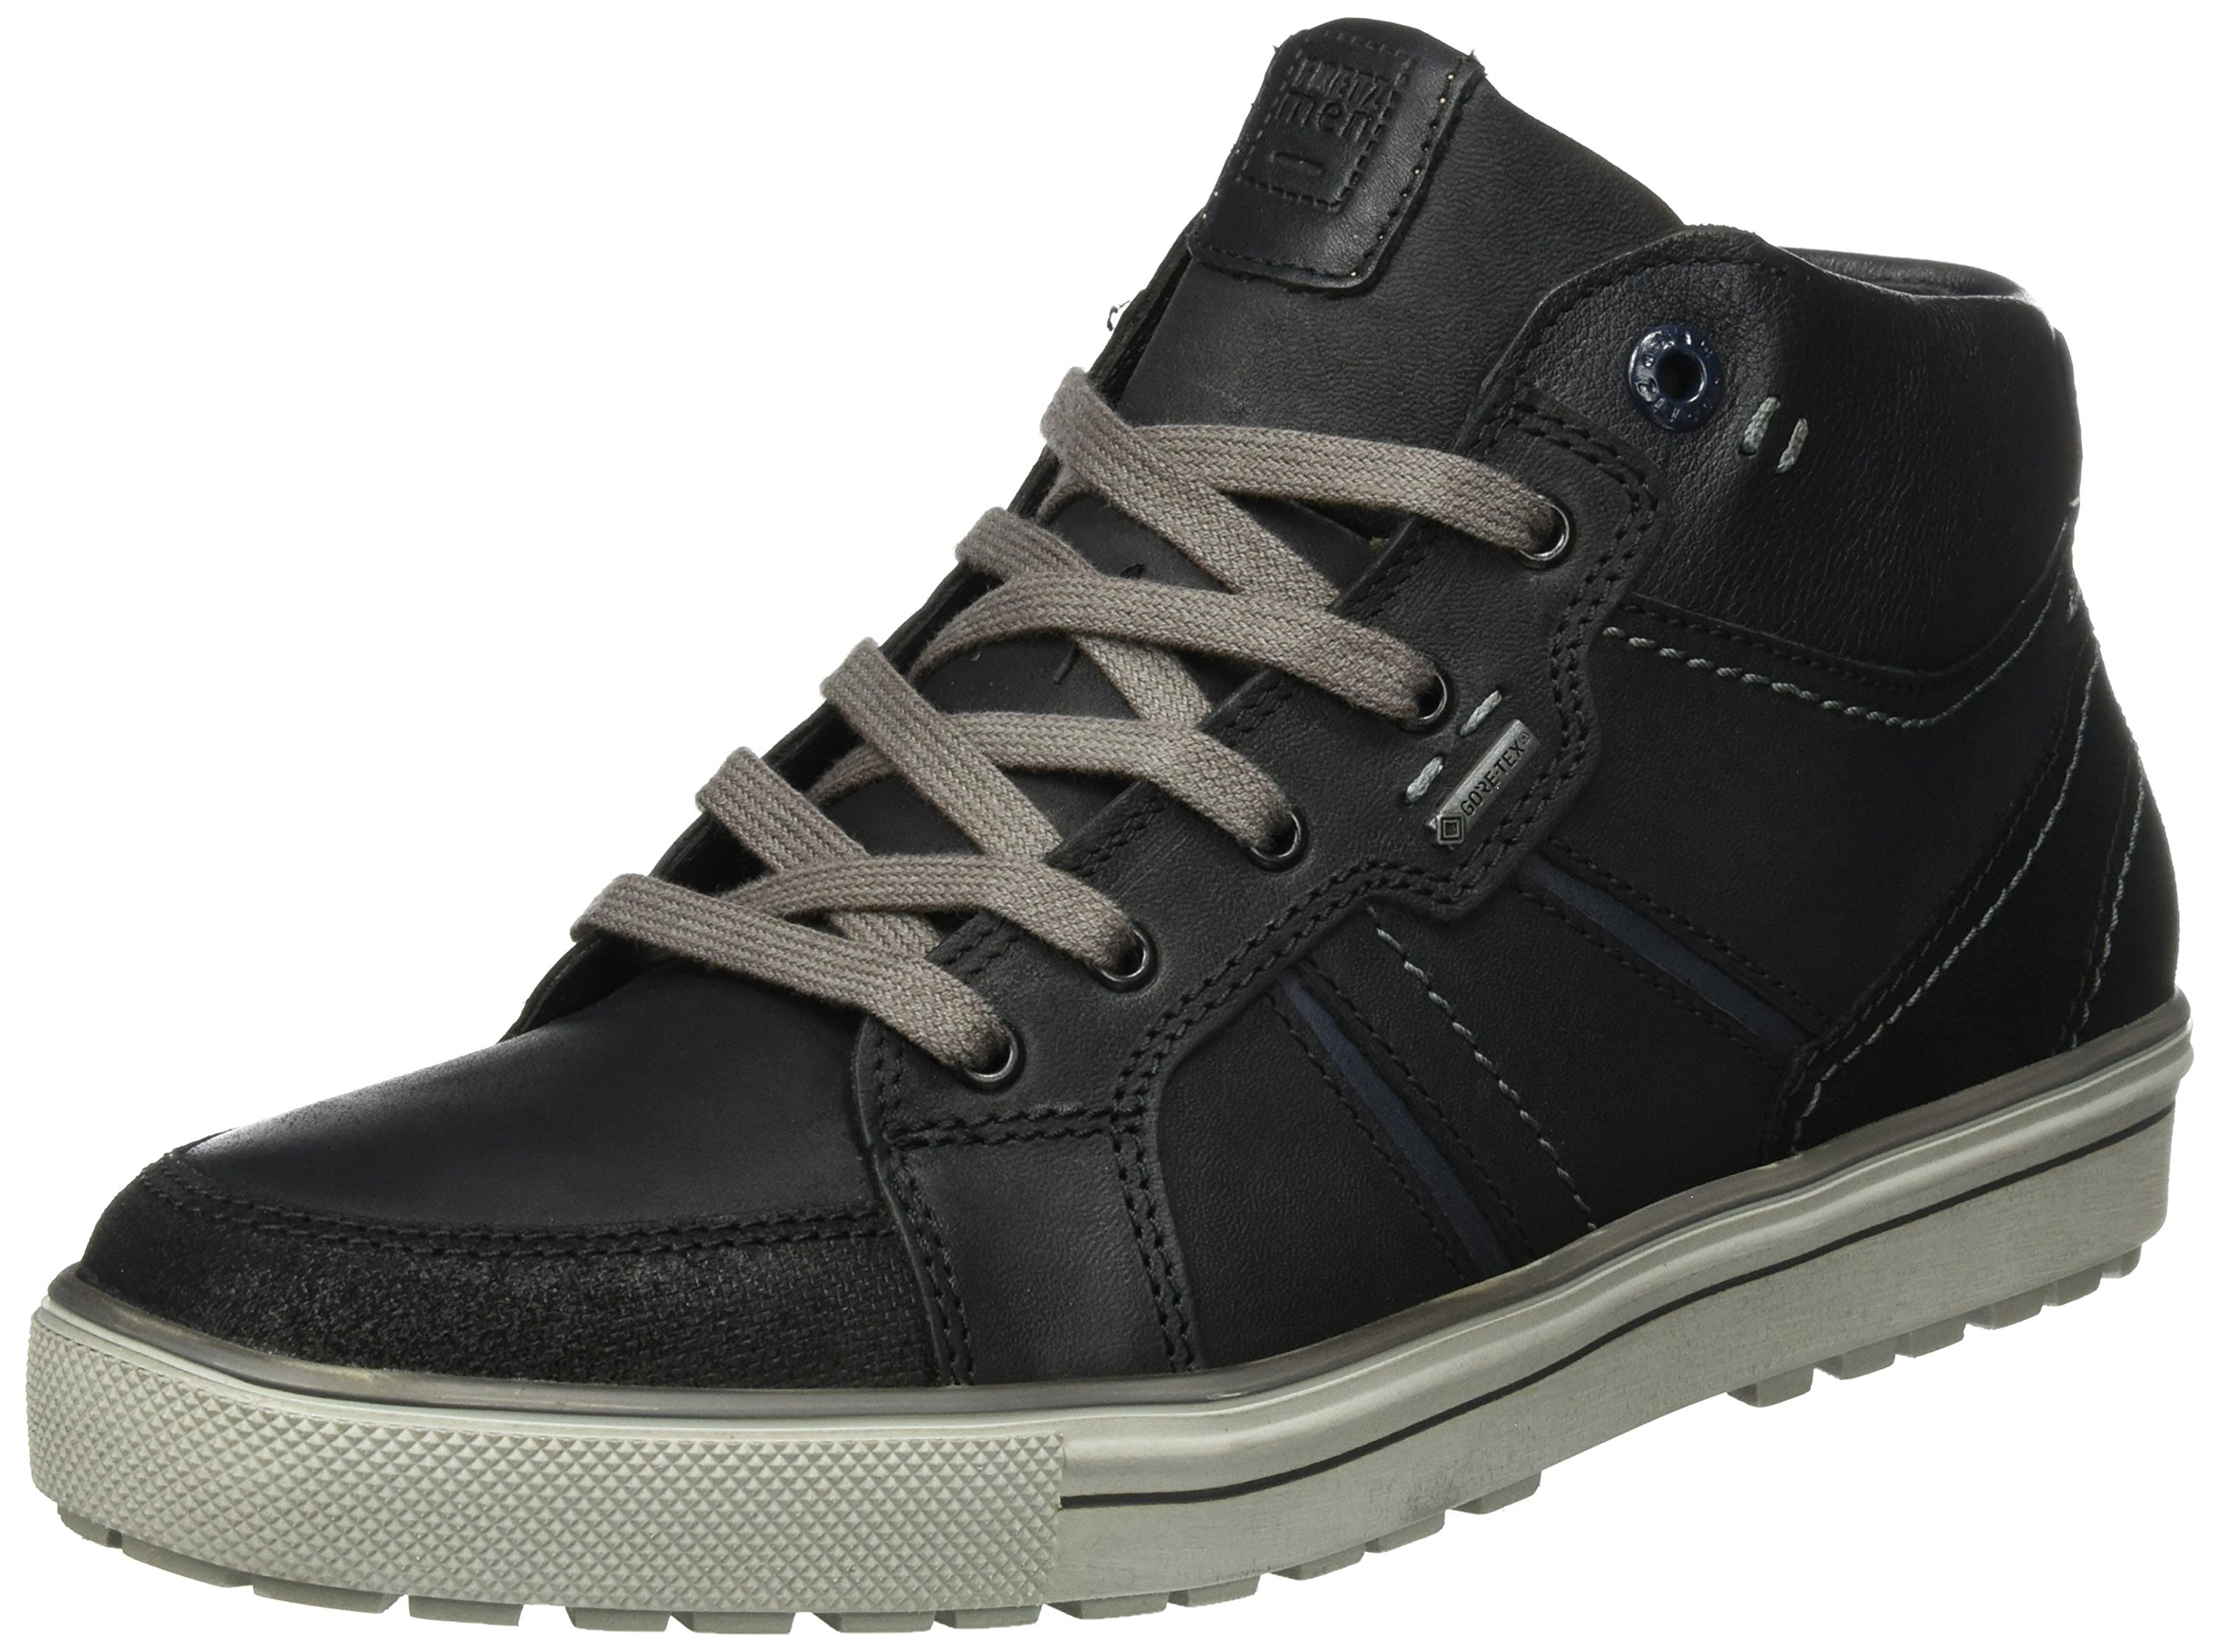 SpiderBaskets Homme51 Noir48 Fretz Basses Eu Men XNnO8k0wP